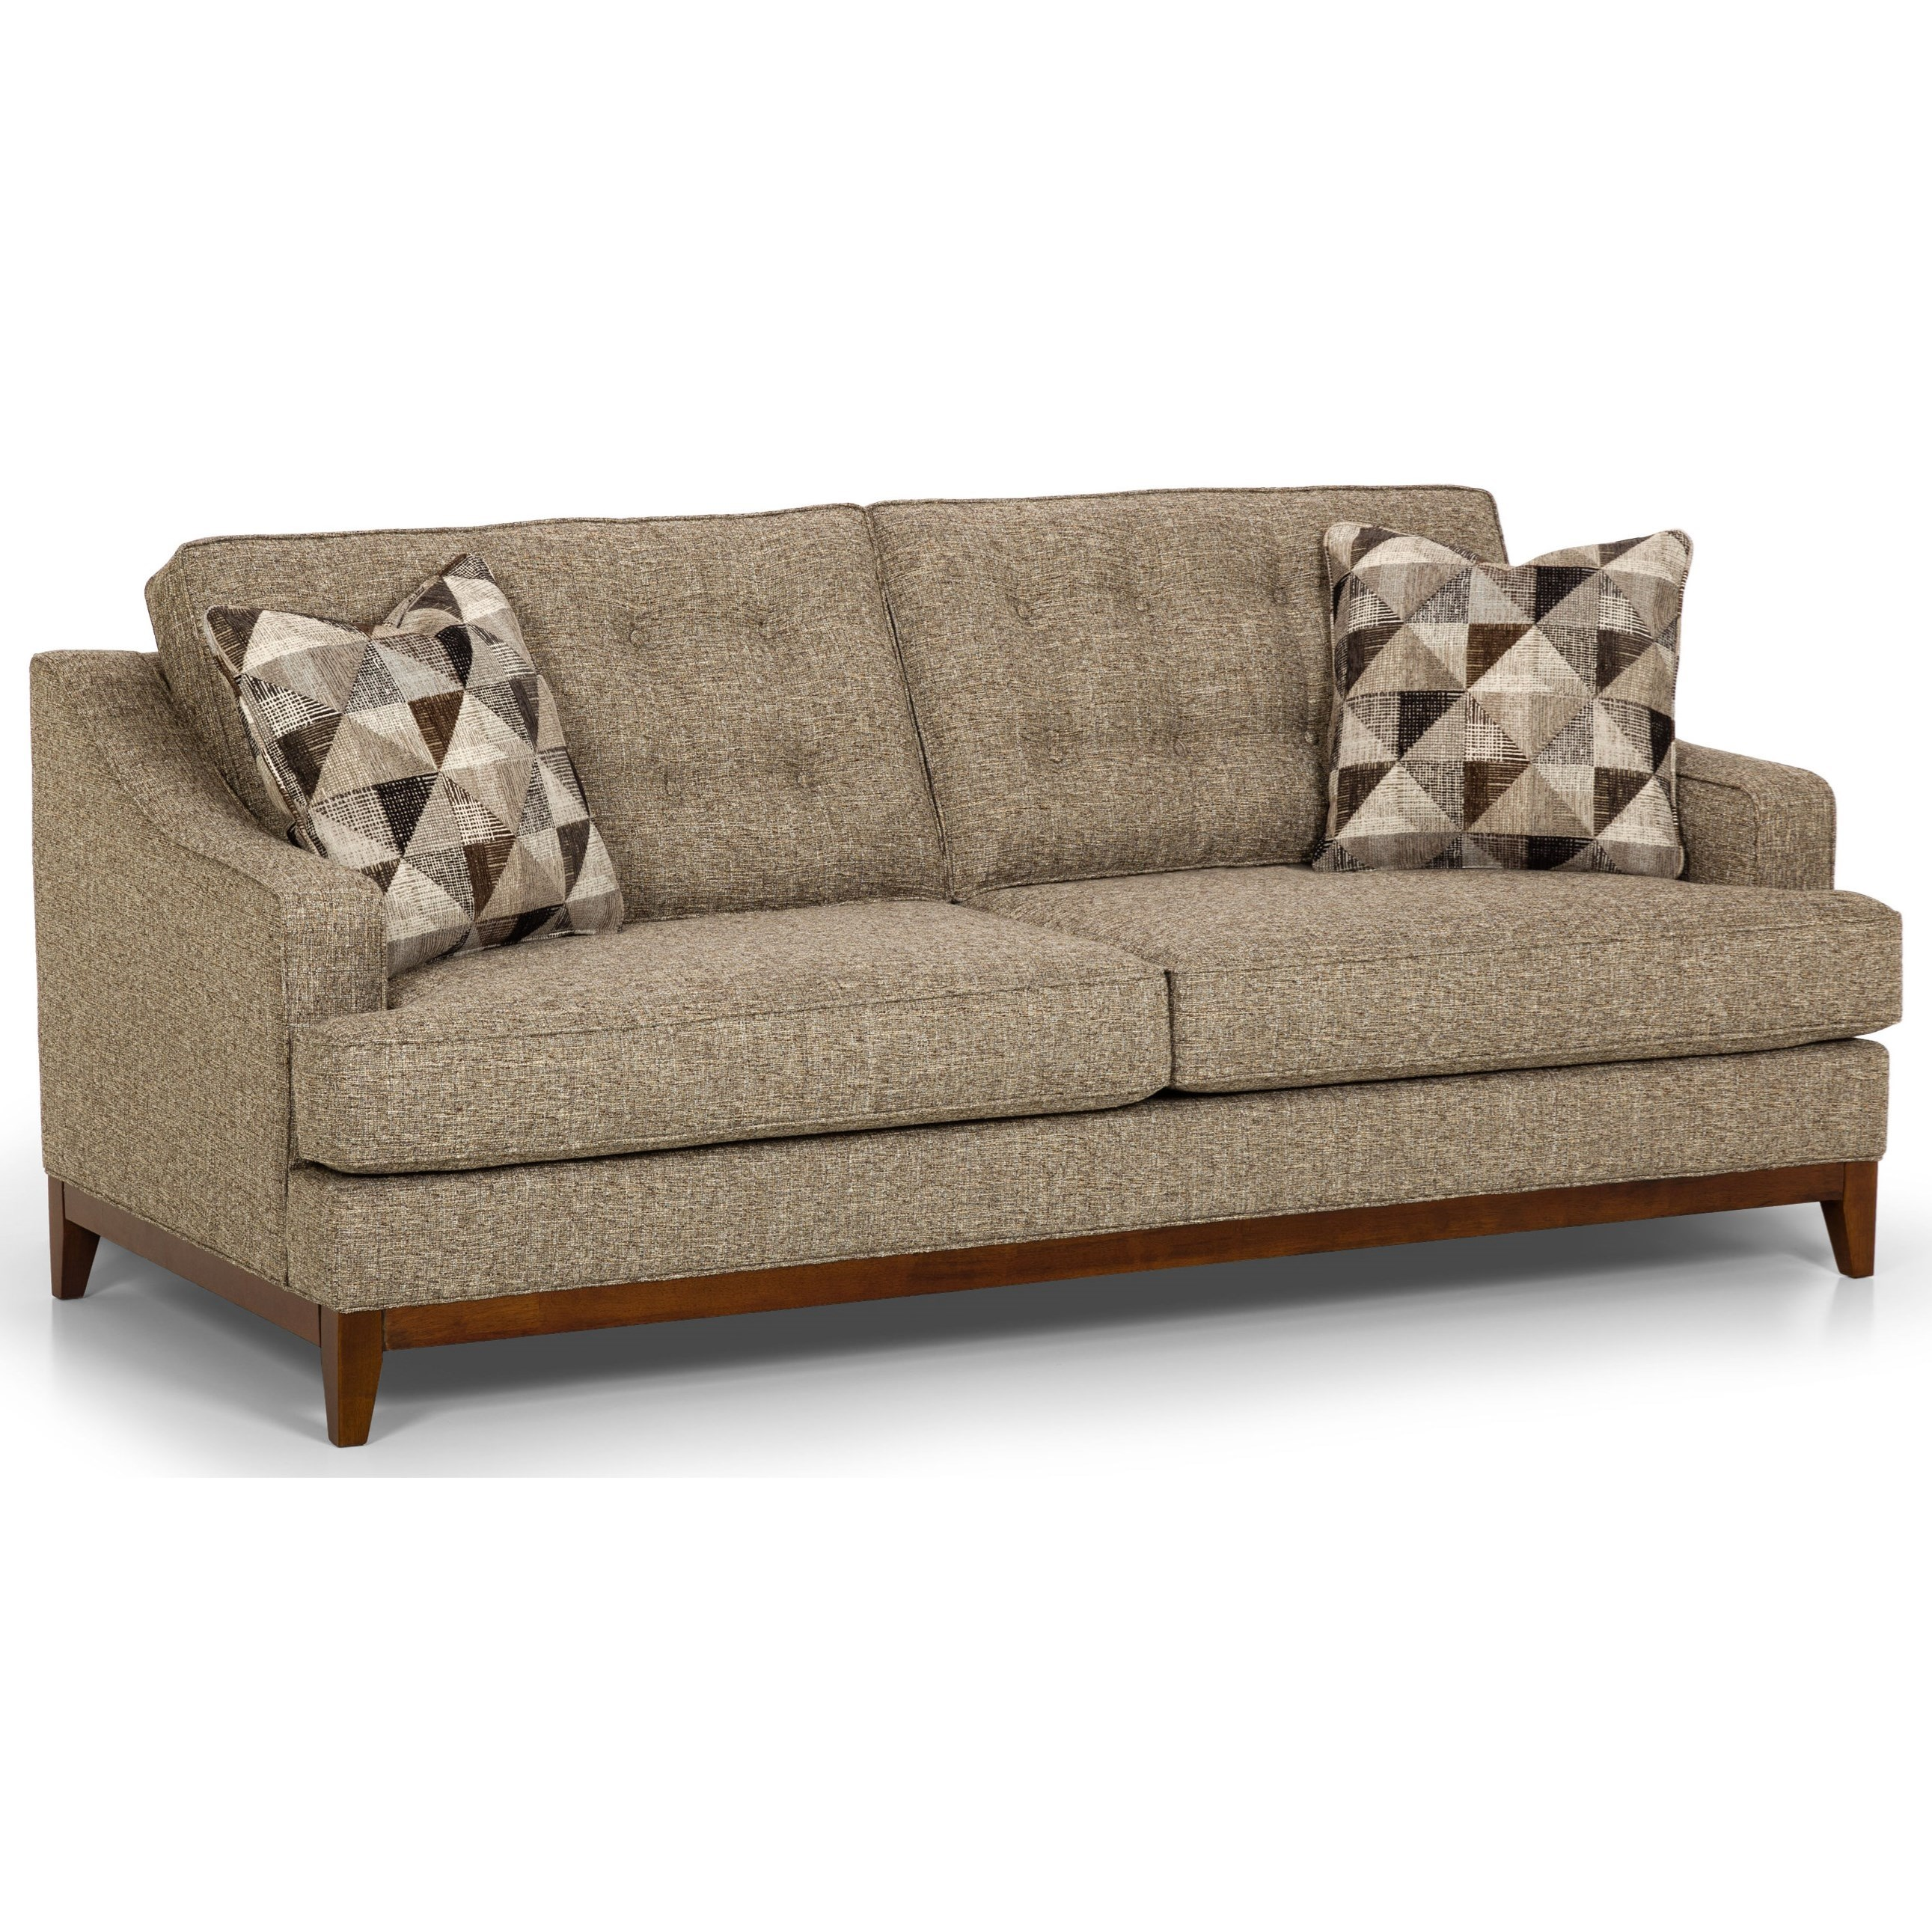 491 Sofa by Stanton at Wilson's Furniture